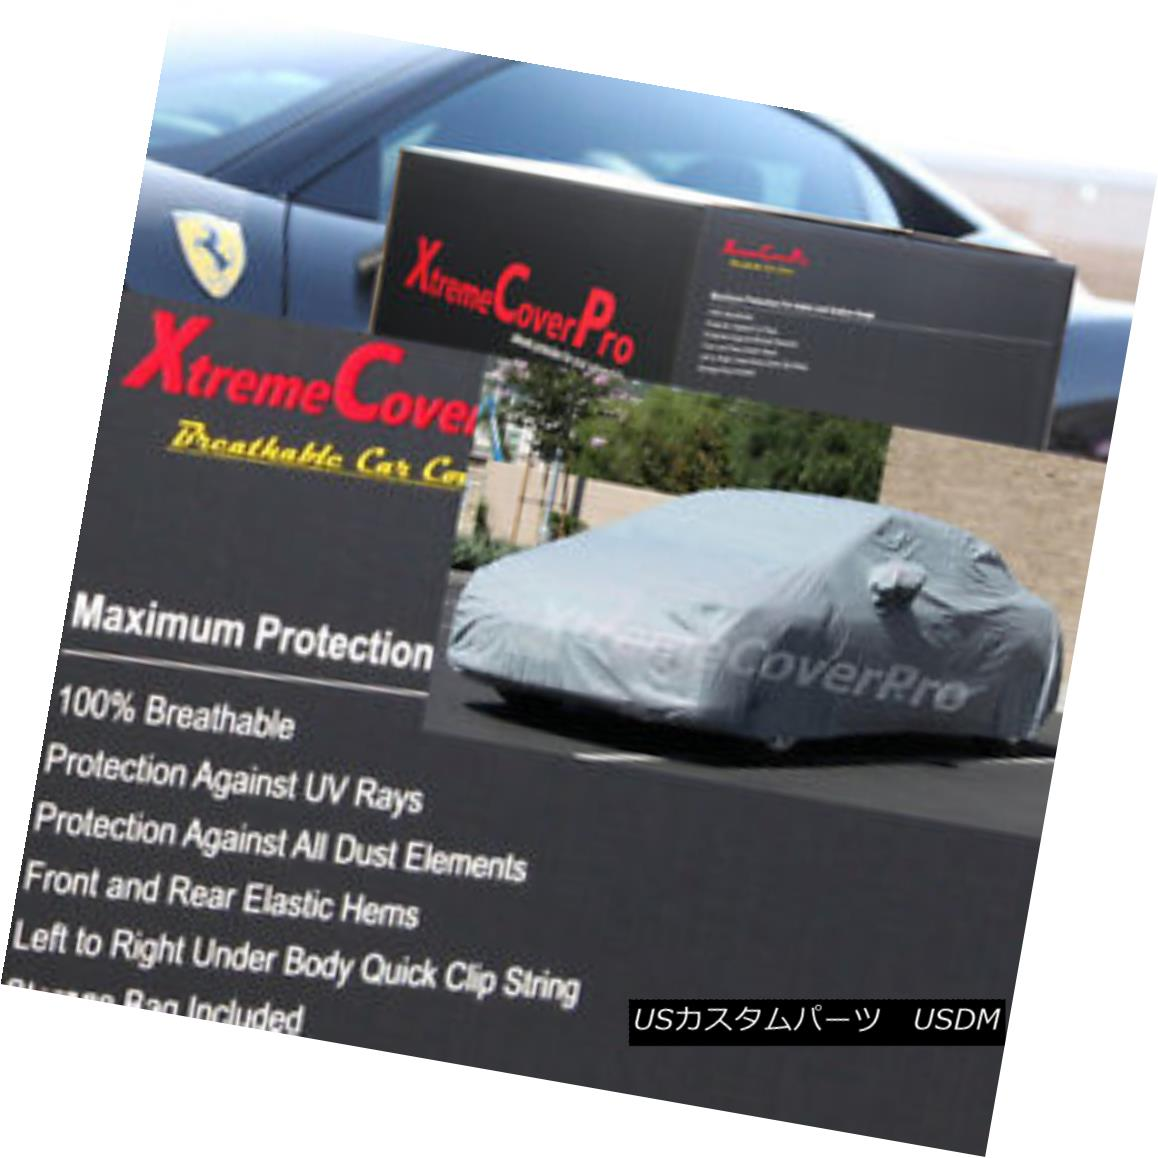 カーカバー 1994 1995 1996 Dodge Stealth Breathable Car Cover w/MirrorPocket 1994年1995年1996年Dodgeステルス通気性車カバー付きMirrorPocket